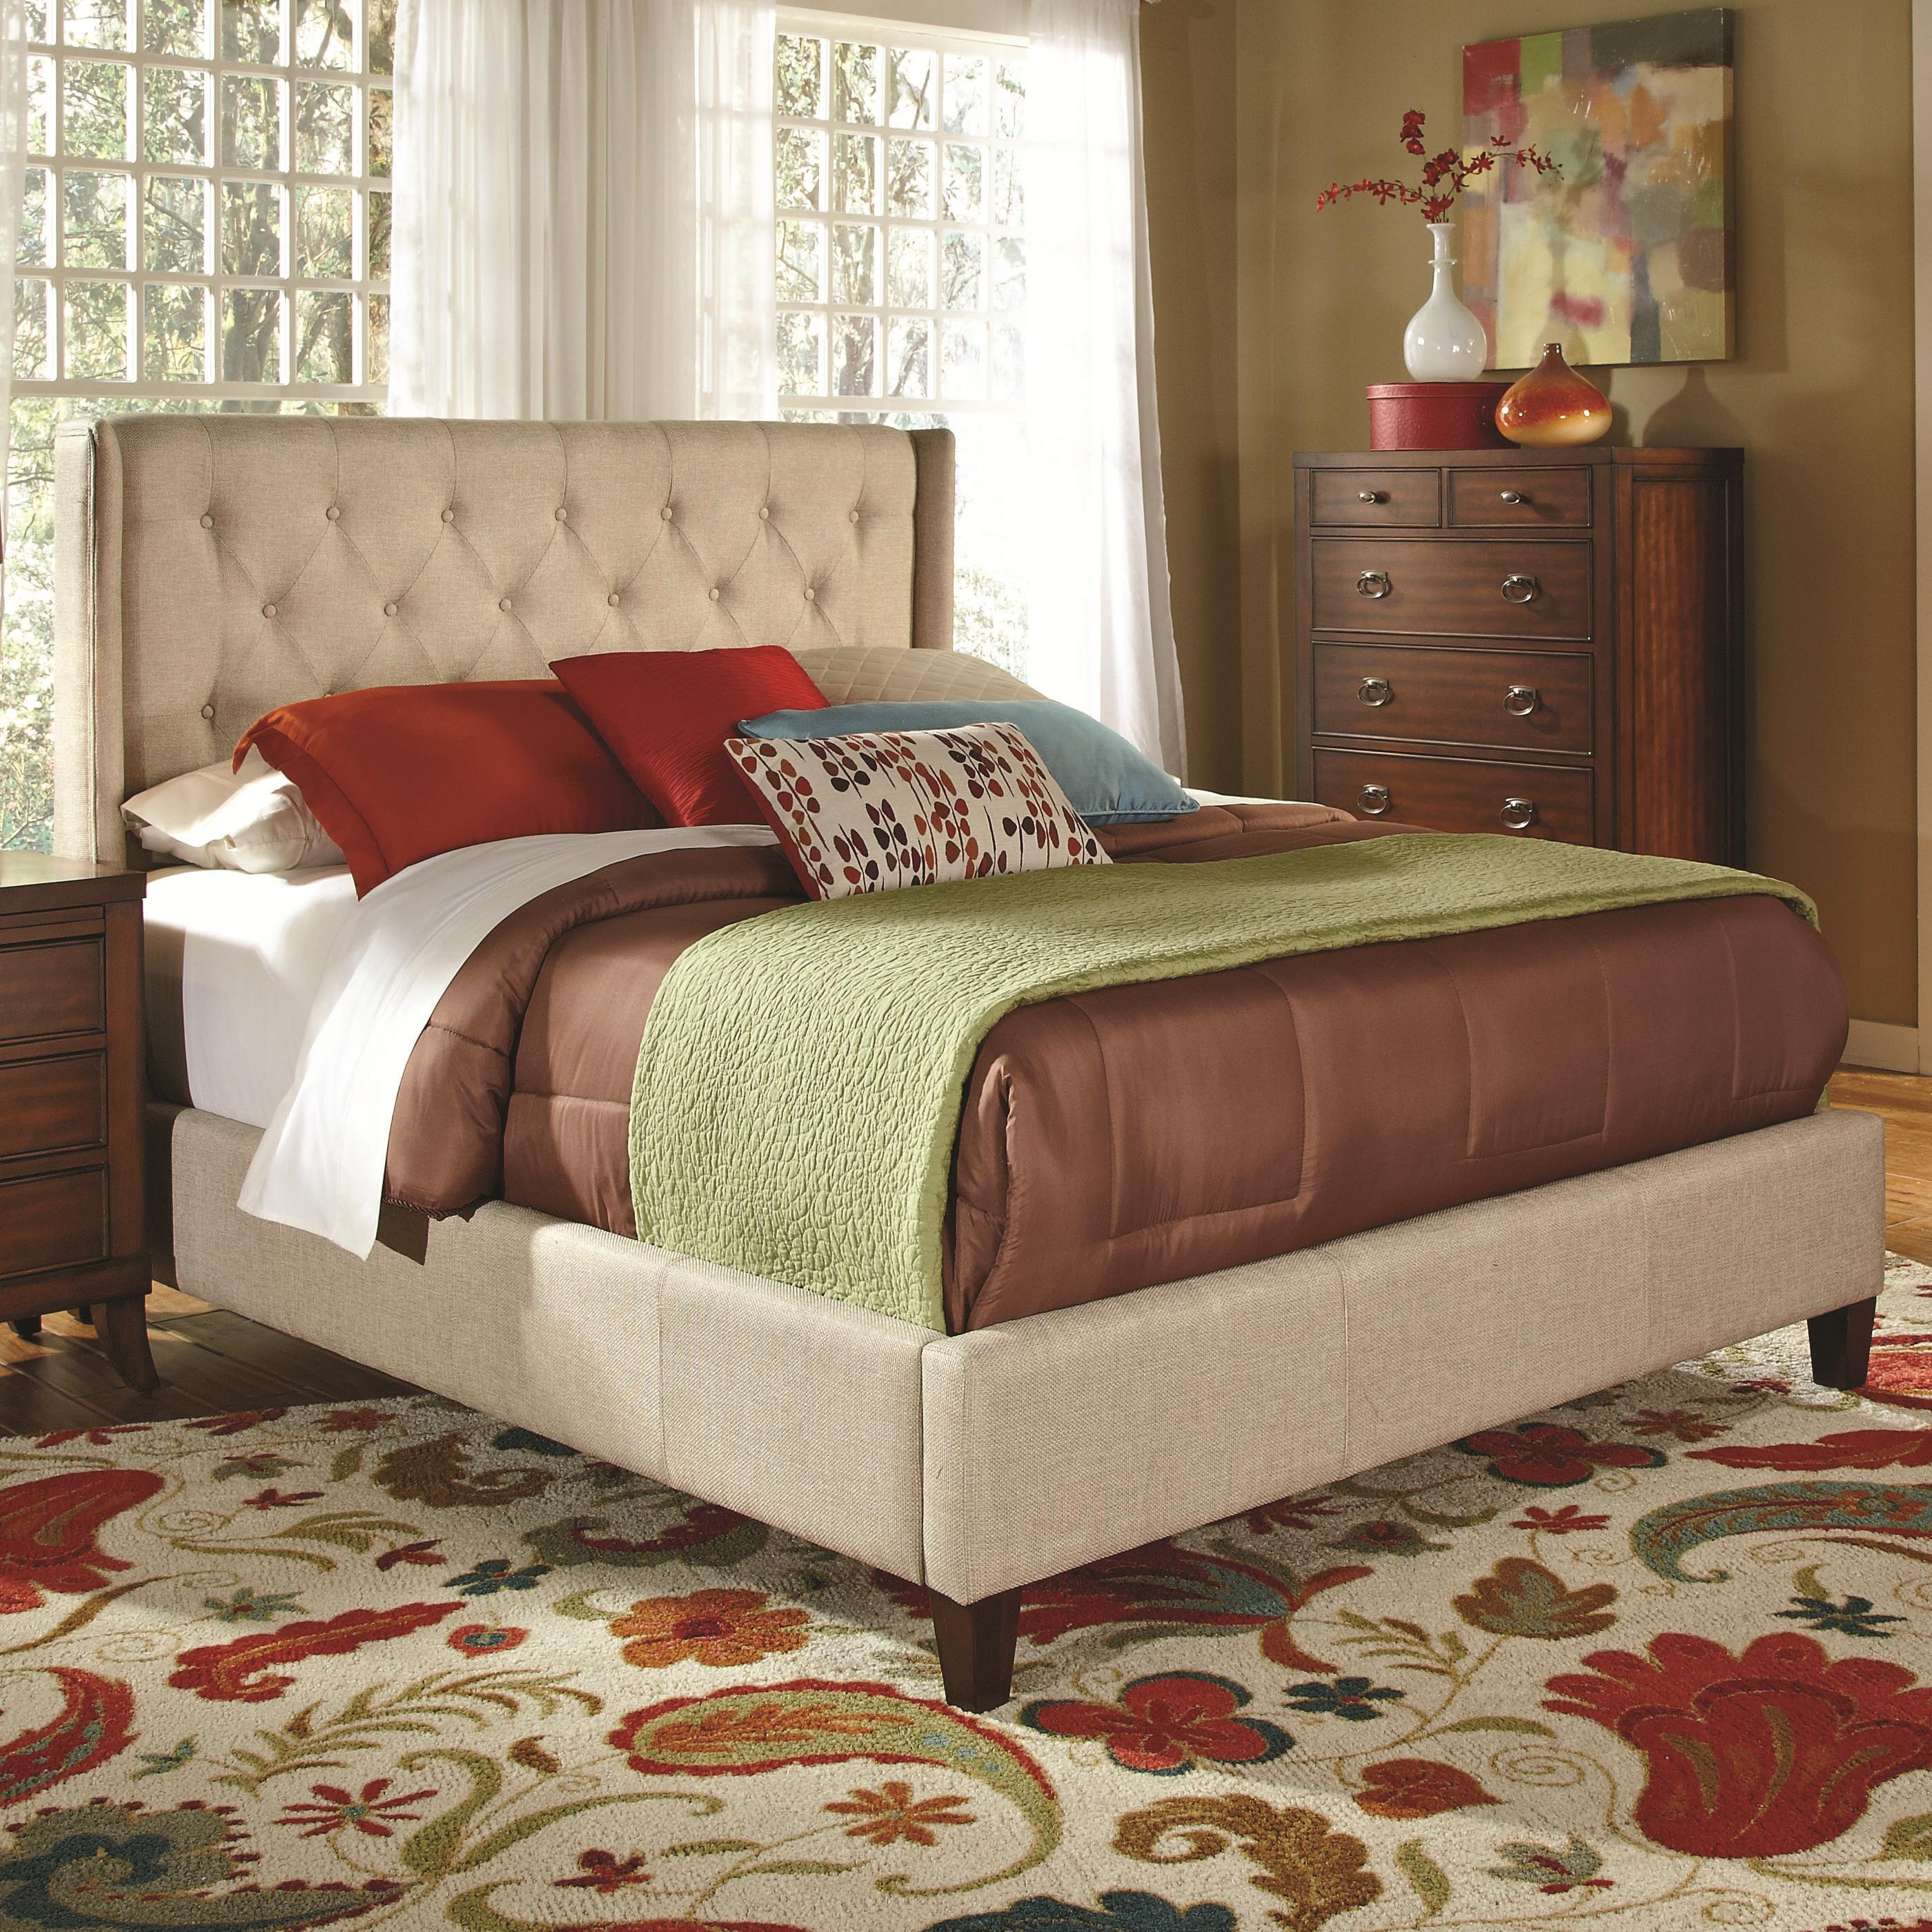 Upholstered Beds Upholstered California King Bed With Tall Tufted Headboard Quality Furniture At Affordable Prices In Philadelphia Main Line Pa